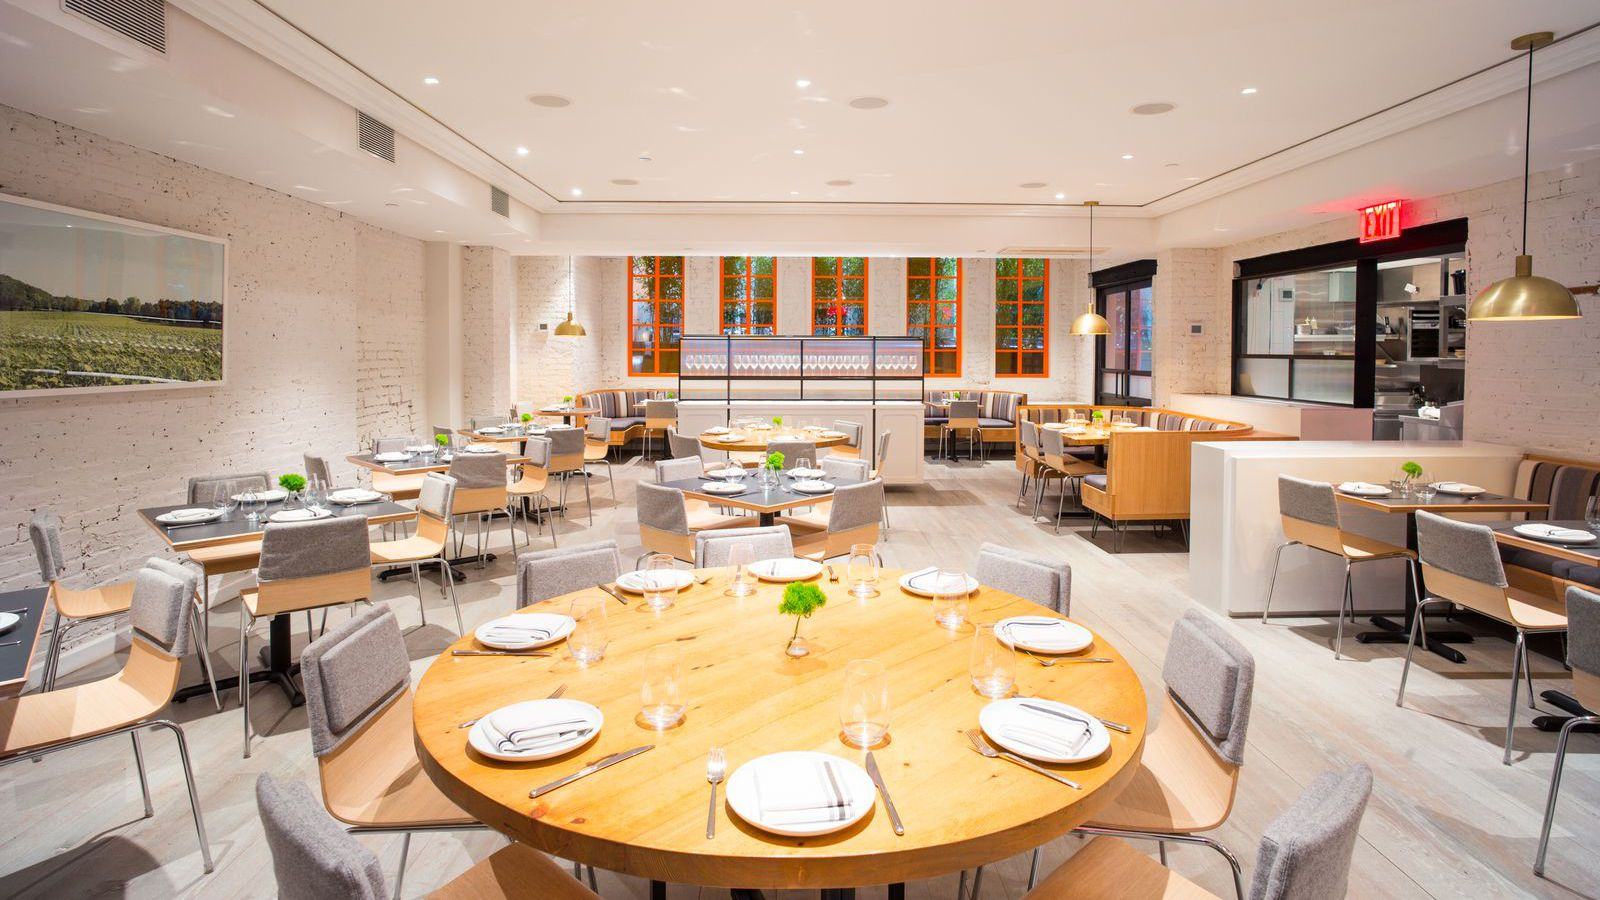 Jean georges prot g dan kluger prepares to open his first for Abc kitchen restaurant week menu